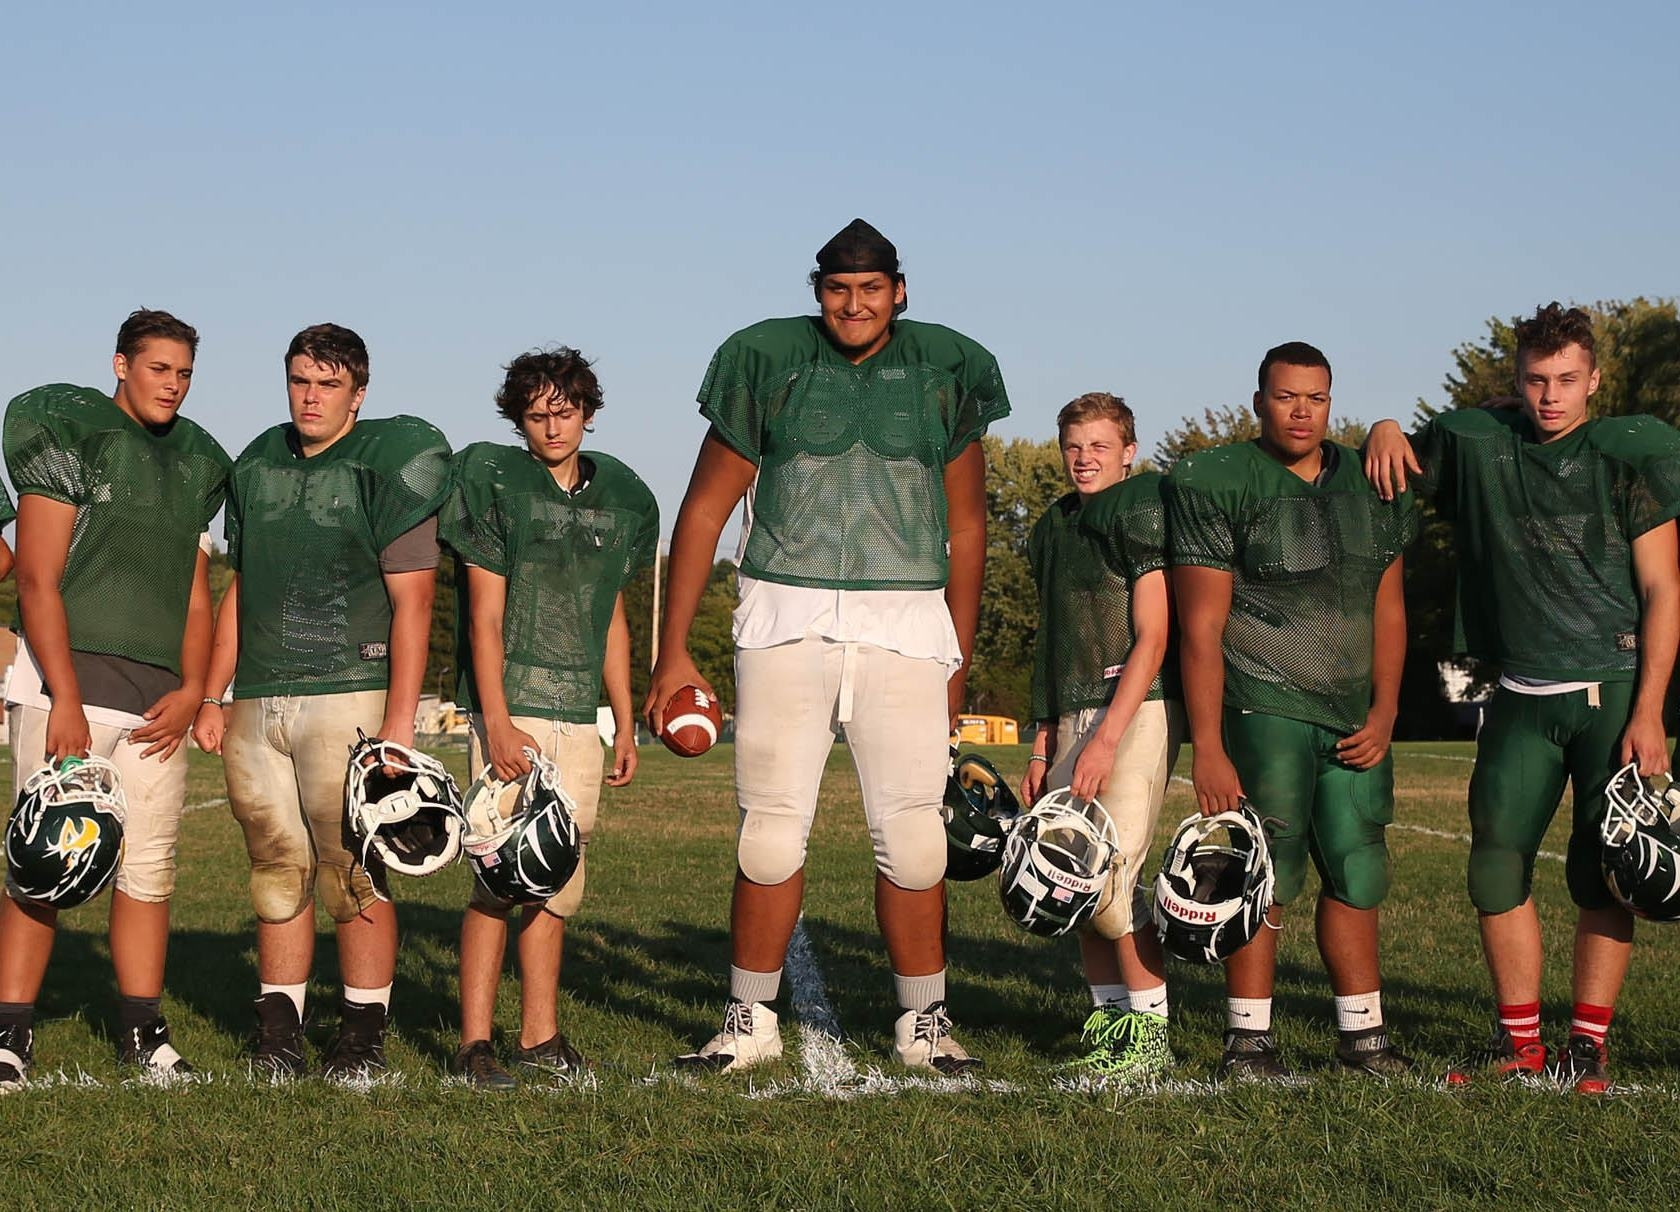 He's 7-foot-1, weighs 400 pounds and plays football at Lake Shore